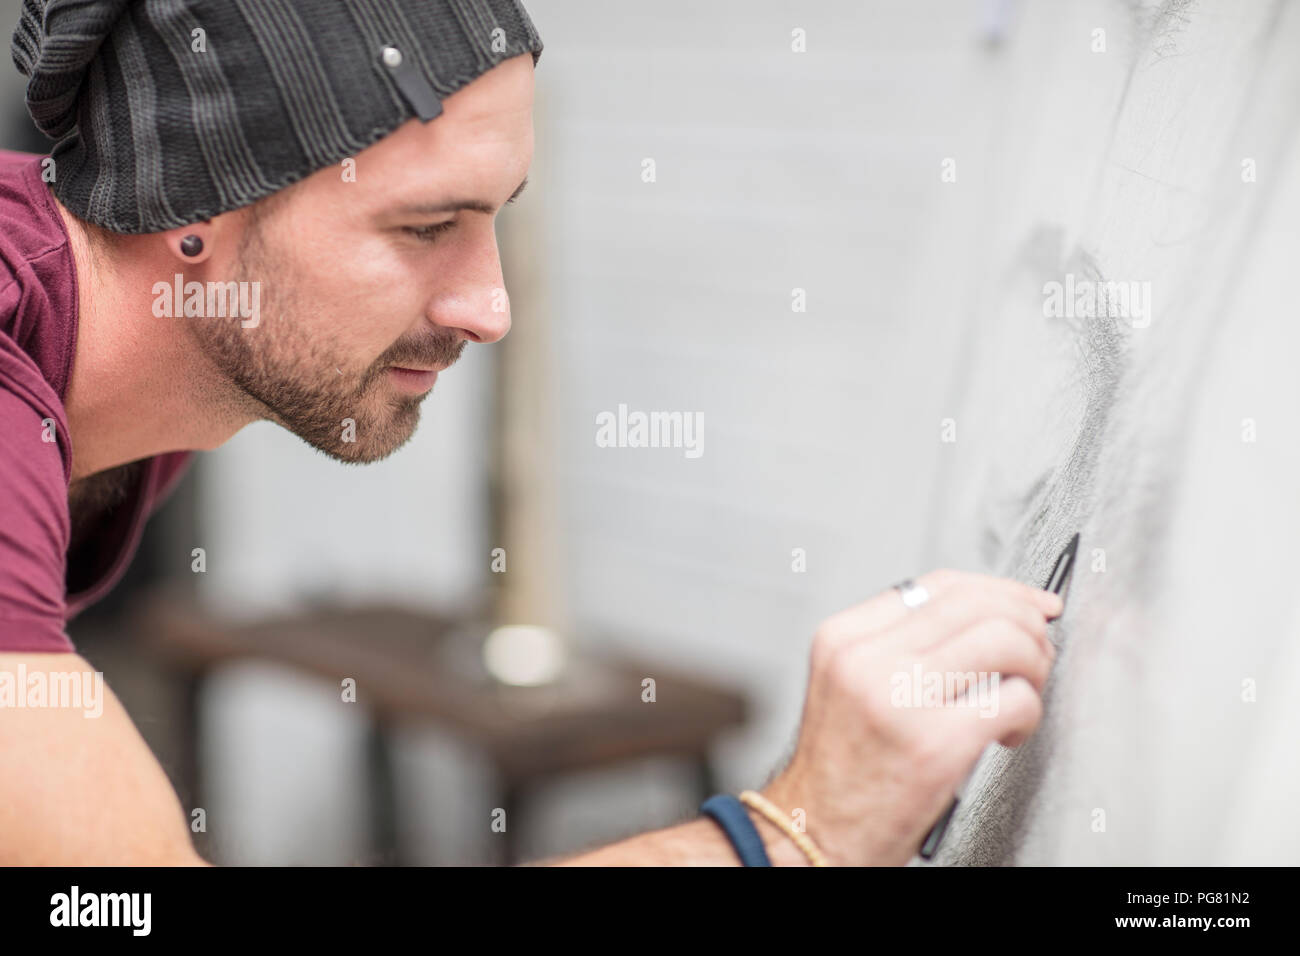 Focused artist drawing on canvas - Stock Image